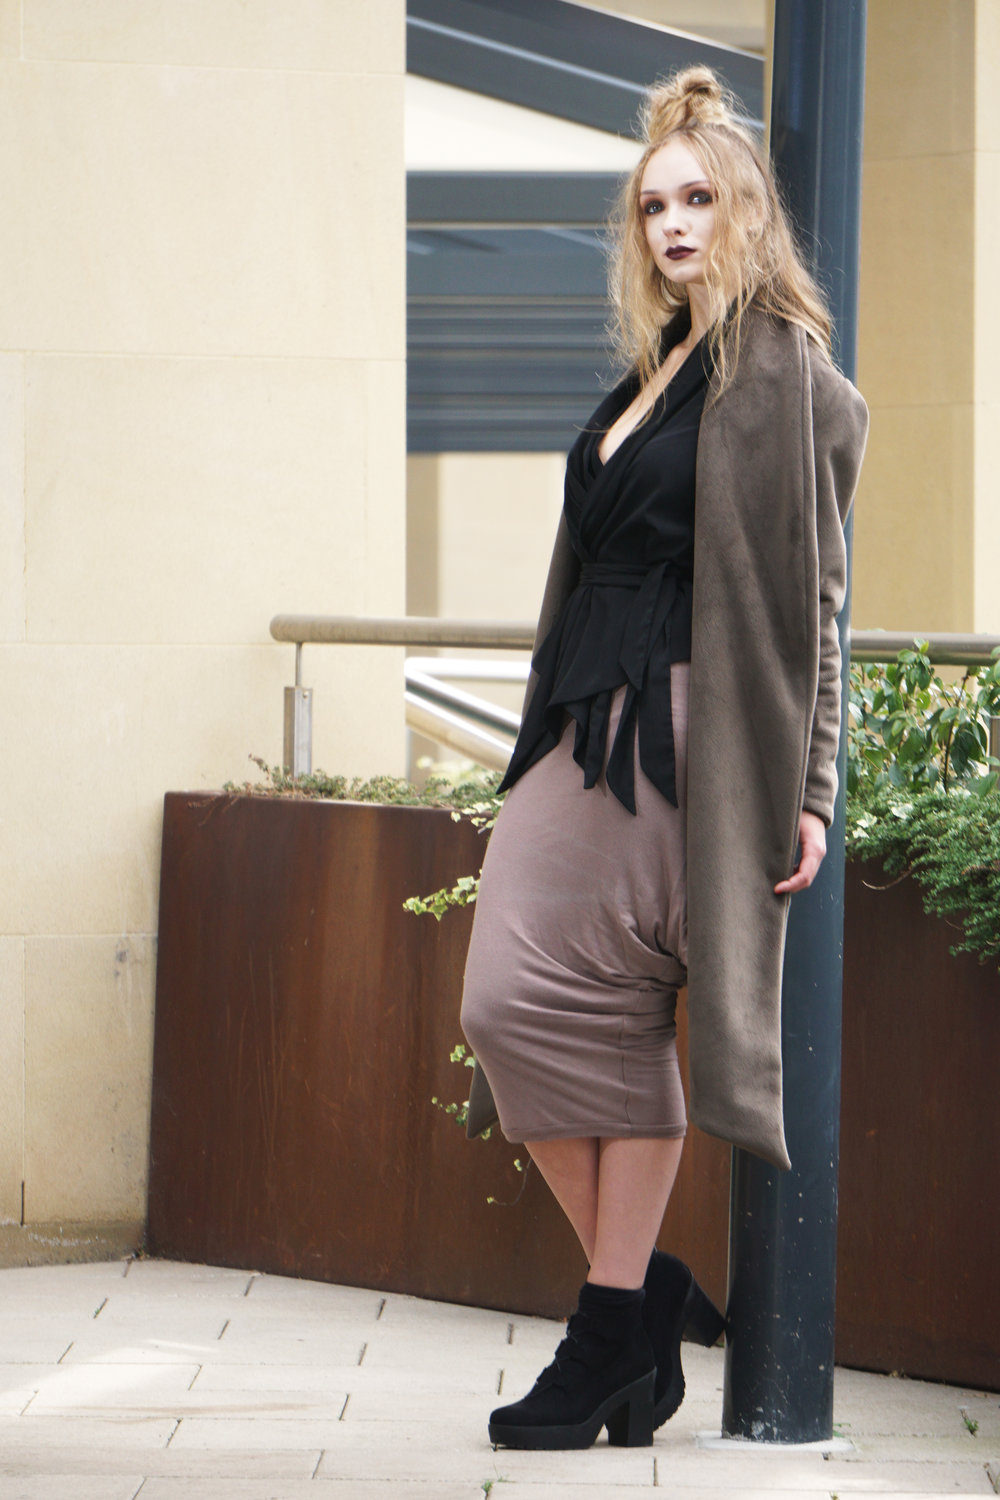 zaramia-ava-zaramiaava-leeds-fashion-designer-ethical-sustainable-taupe-versatile-drape-yoko-skirt-mioka-black-mai-coat-leeds-dock-grunge-10